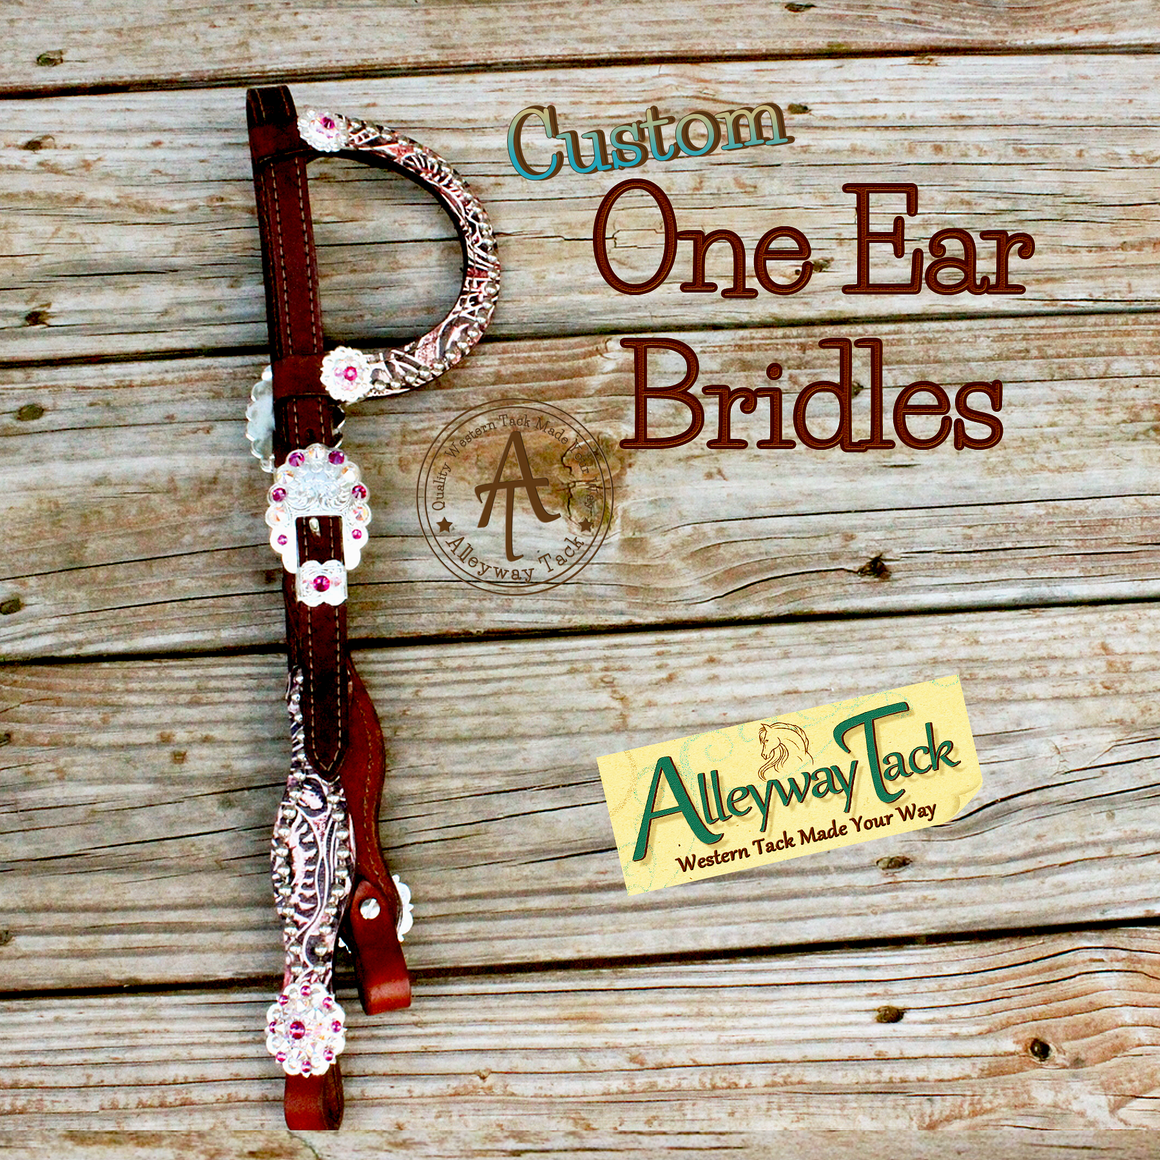 Custom One Ear Bridle